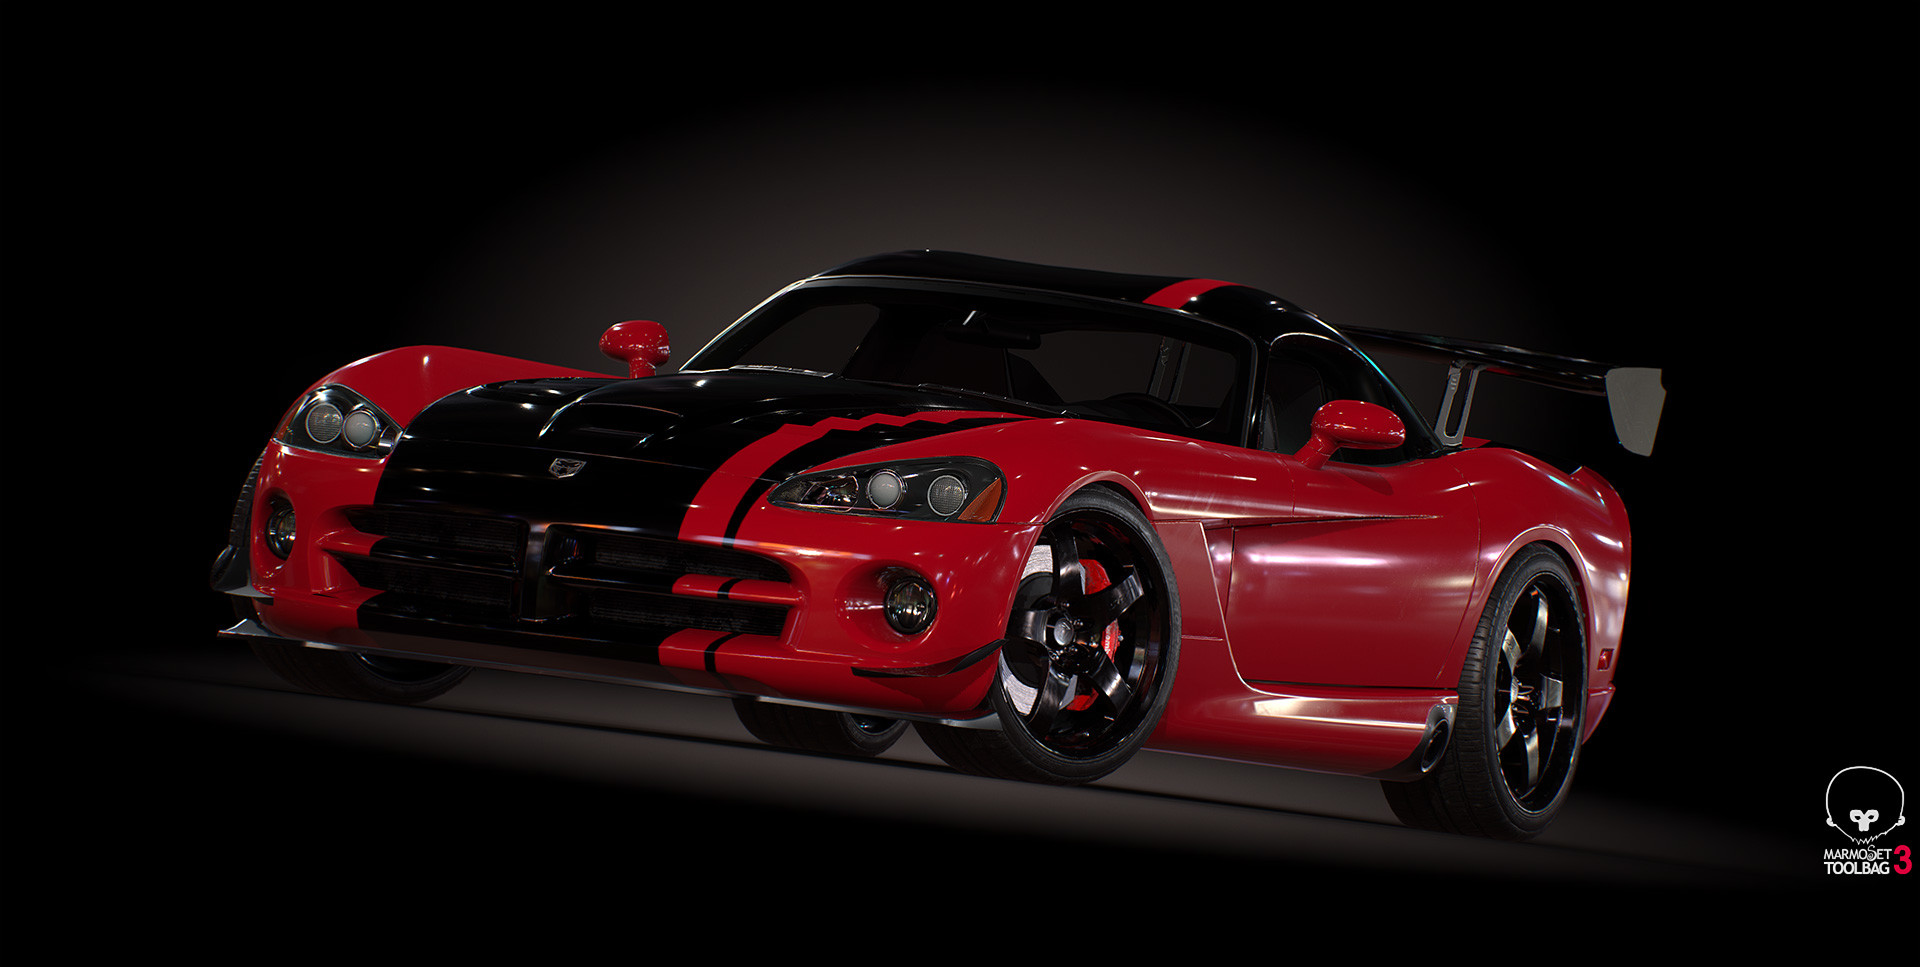 David letondor dodgeviper srt10 david letondor v2